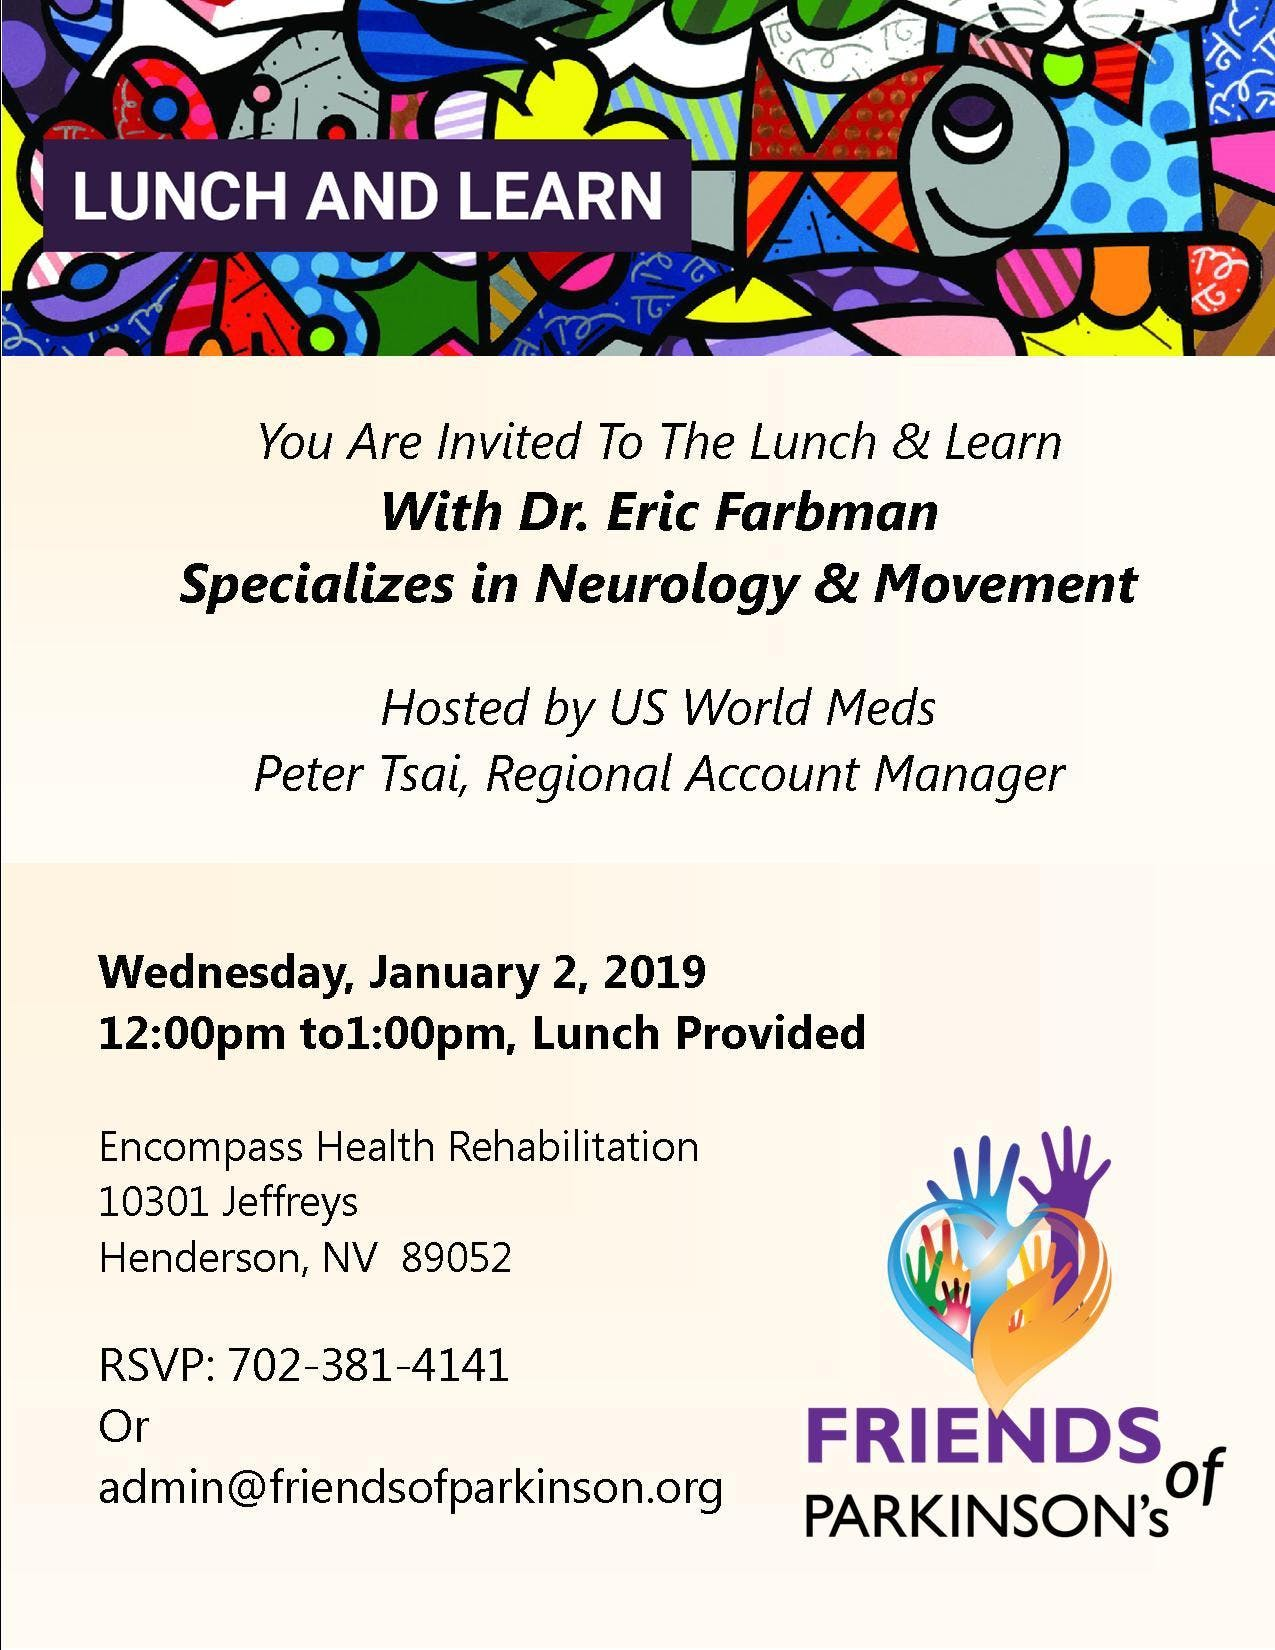 Lunch and Learn with Dr Farbman - 2 JAN 2019